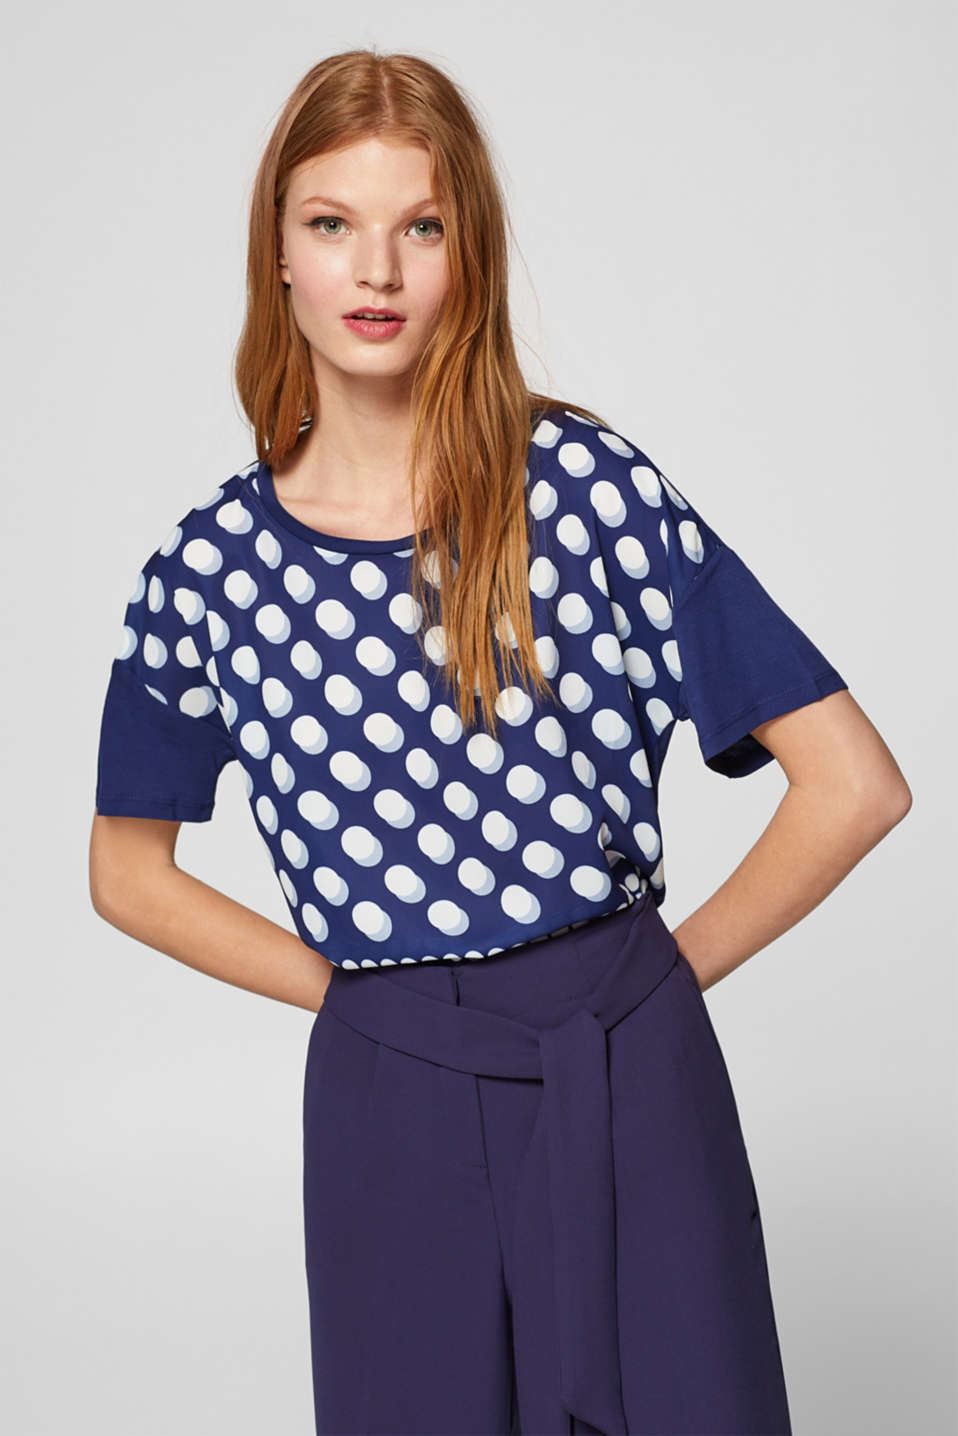 Esprit - Mixed material T-shirt with a polka dot print